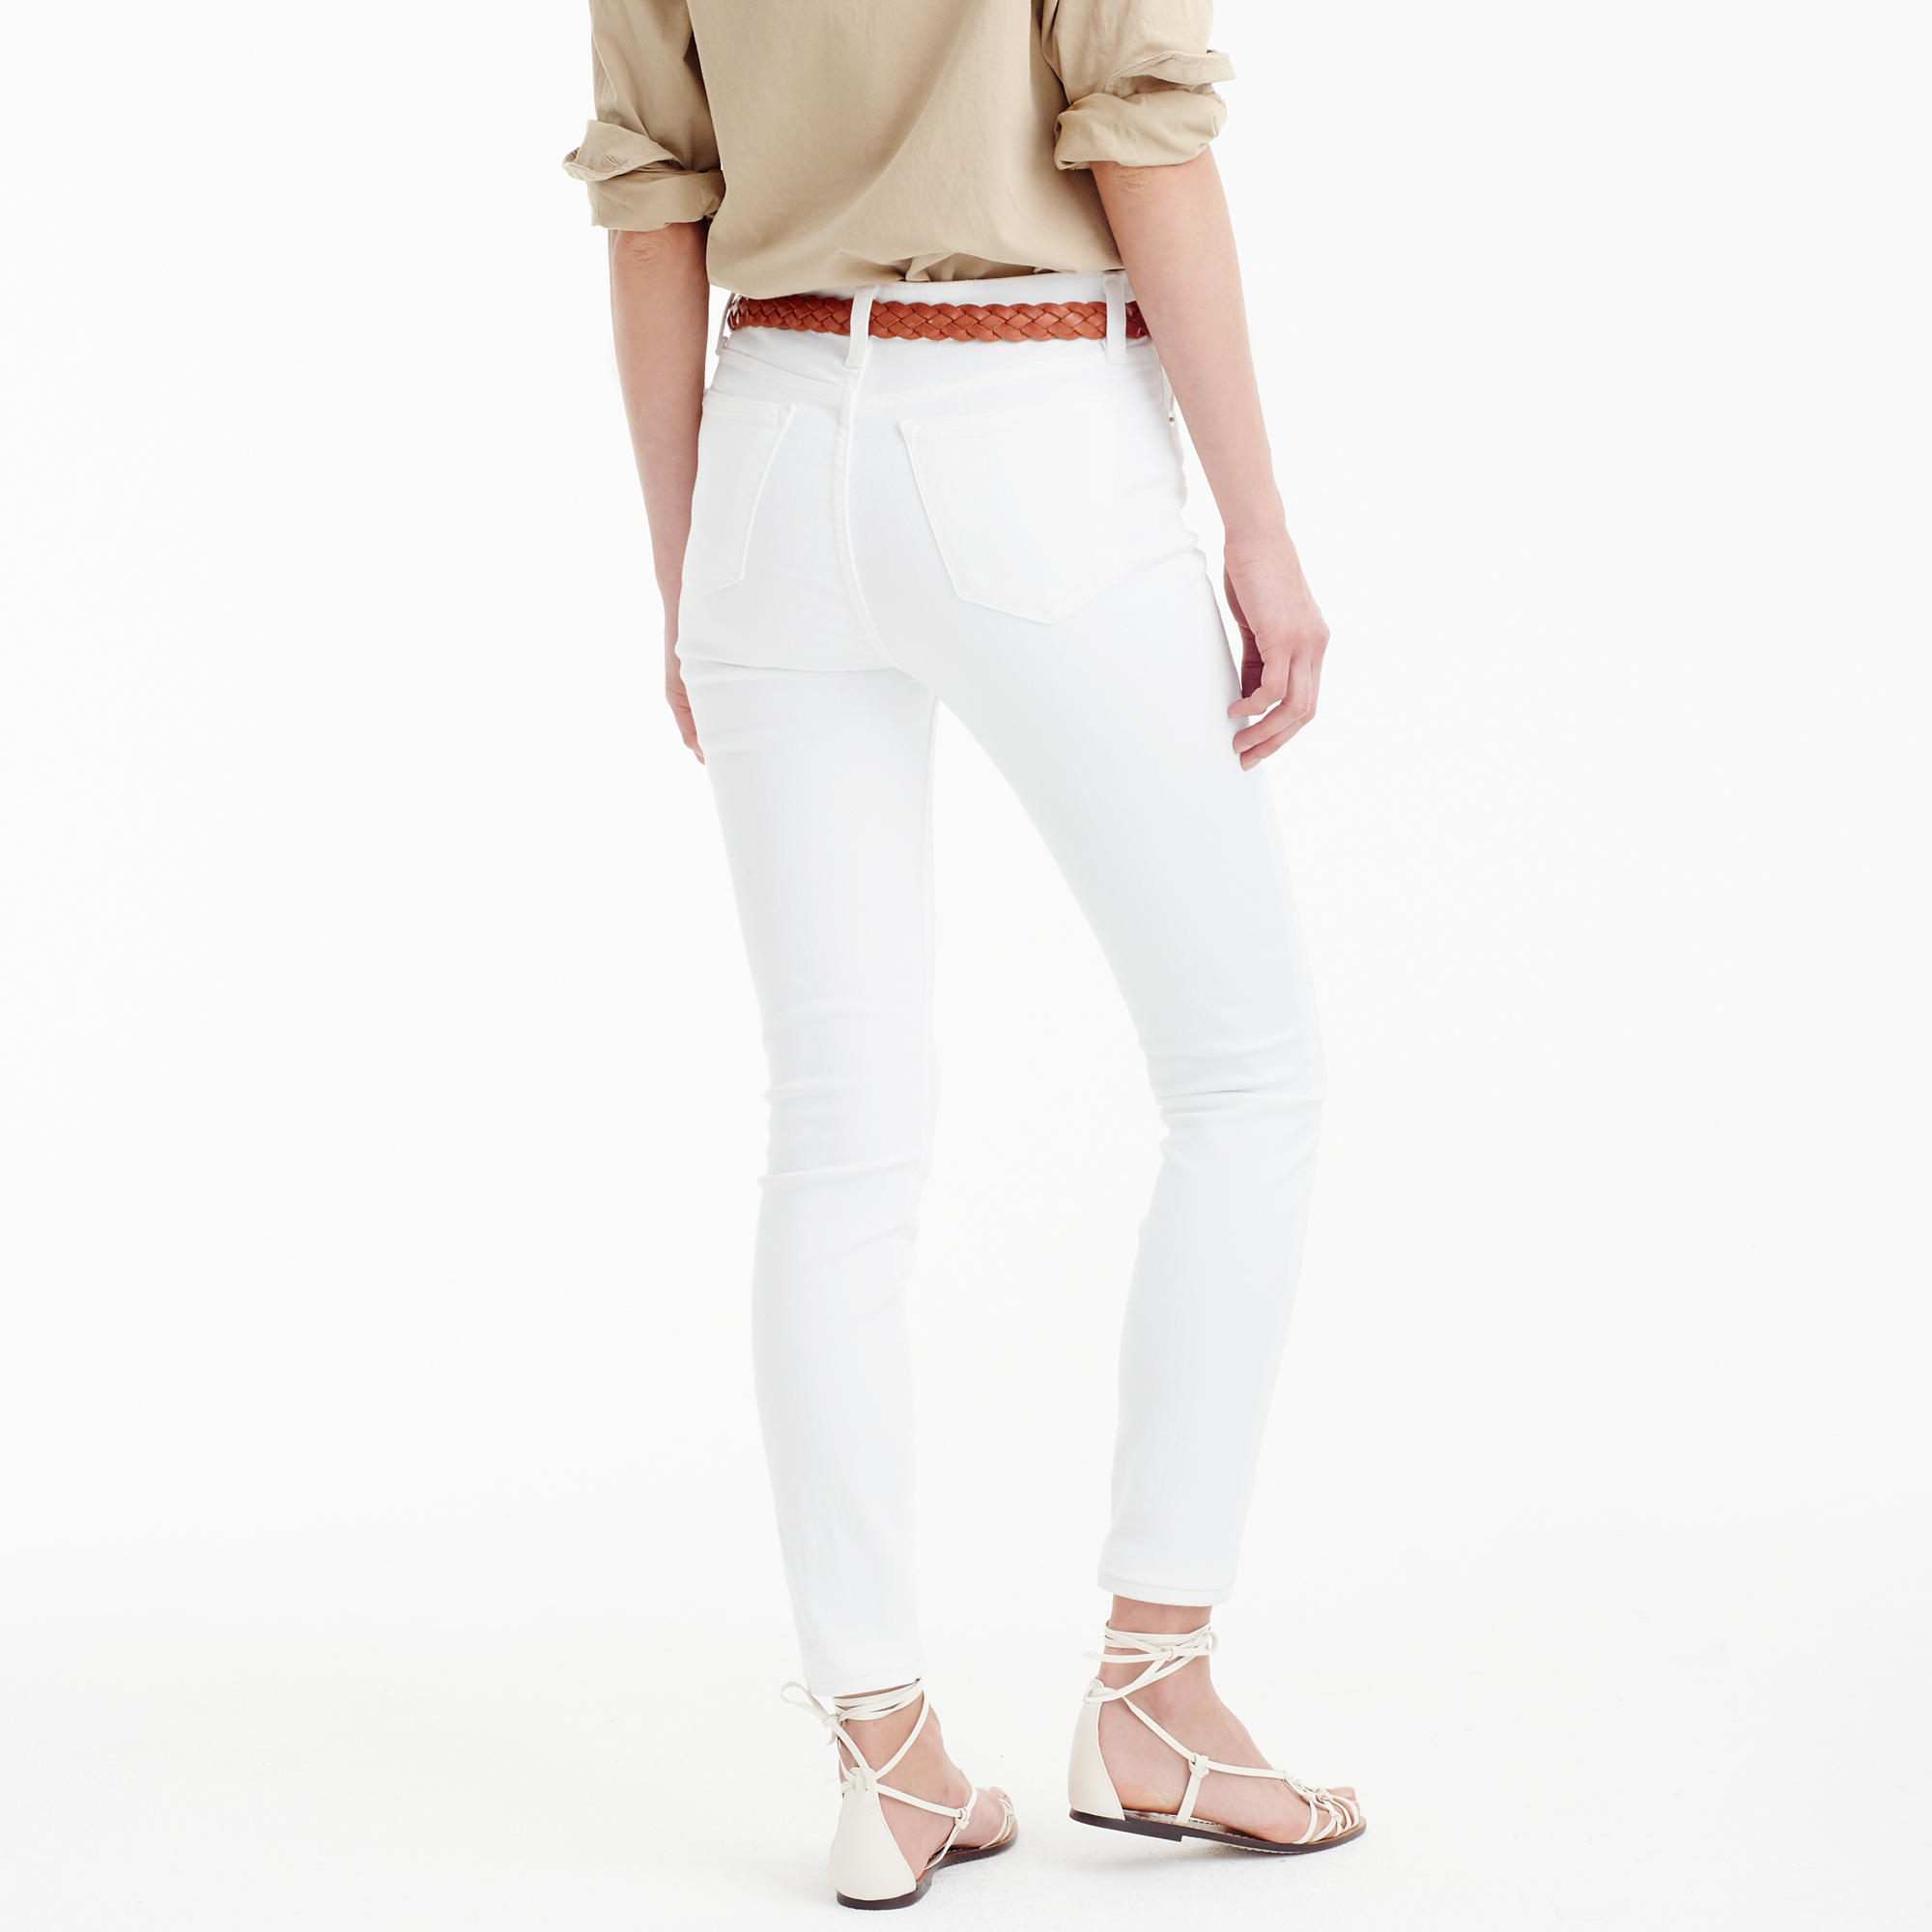 Lookout High-Rise Jean In White : Women's Jeans | J.Crew